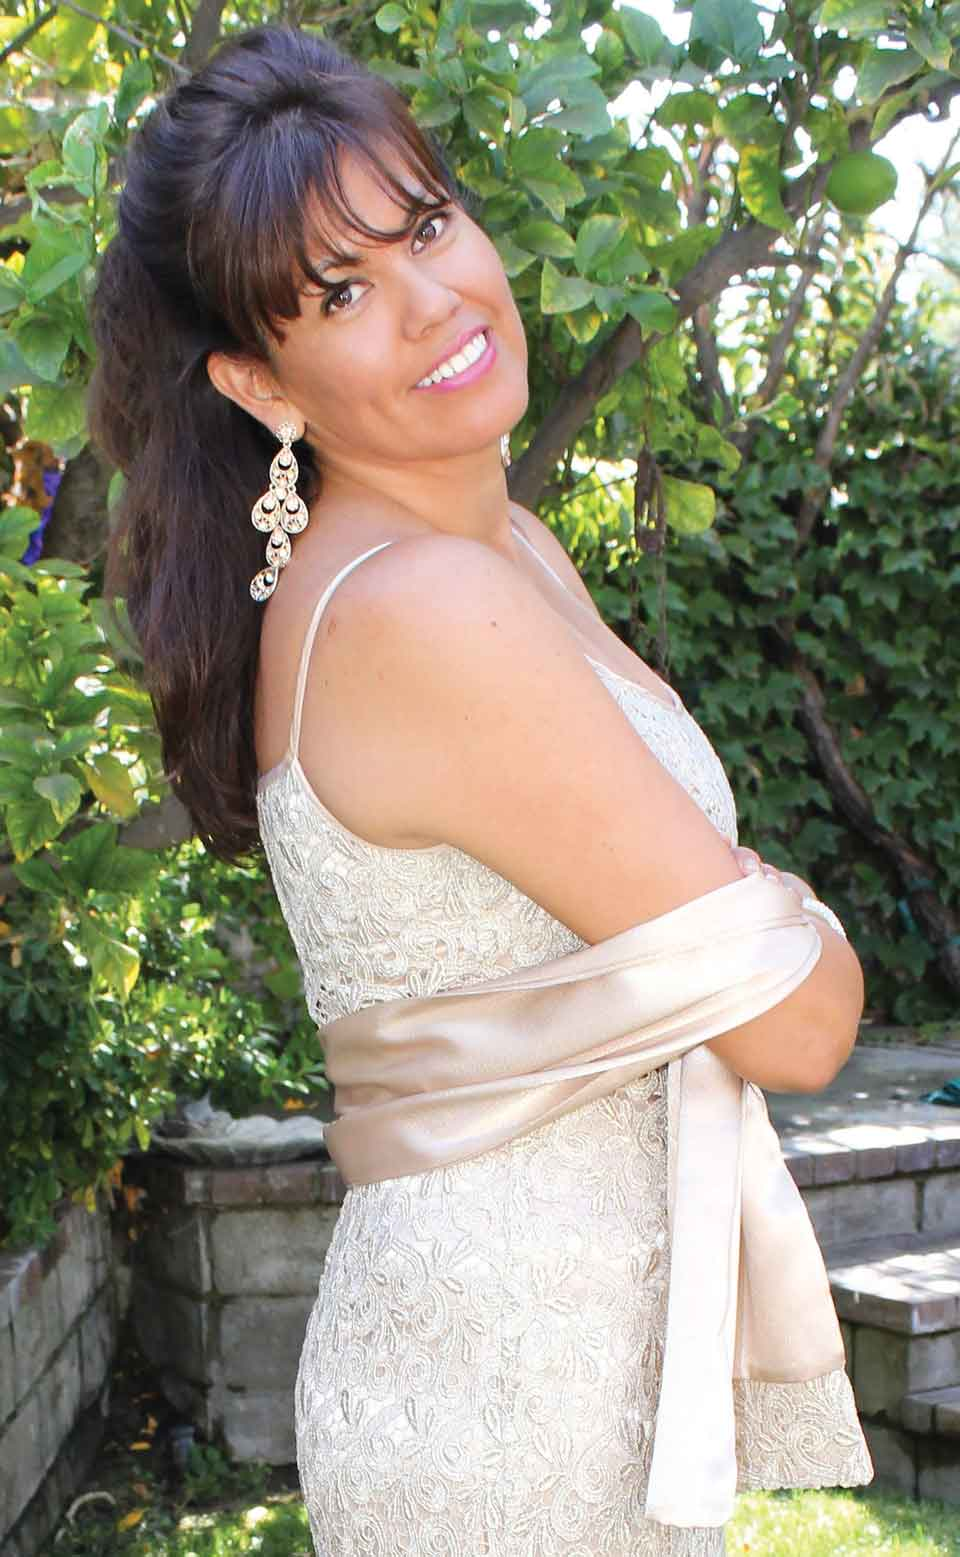 clarita dating site Start communicating with local santa clarita christian singles and meet christian singles who want to meet people, just like you if the faith and values of your future spouse are important.